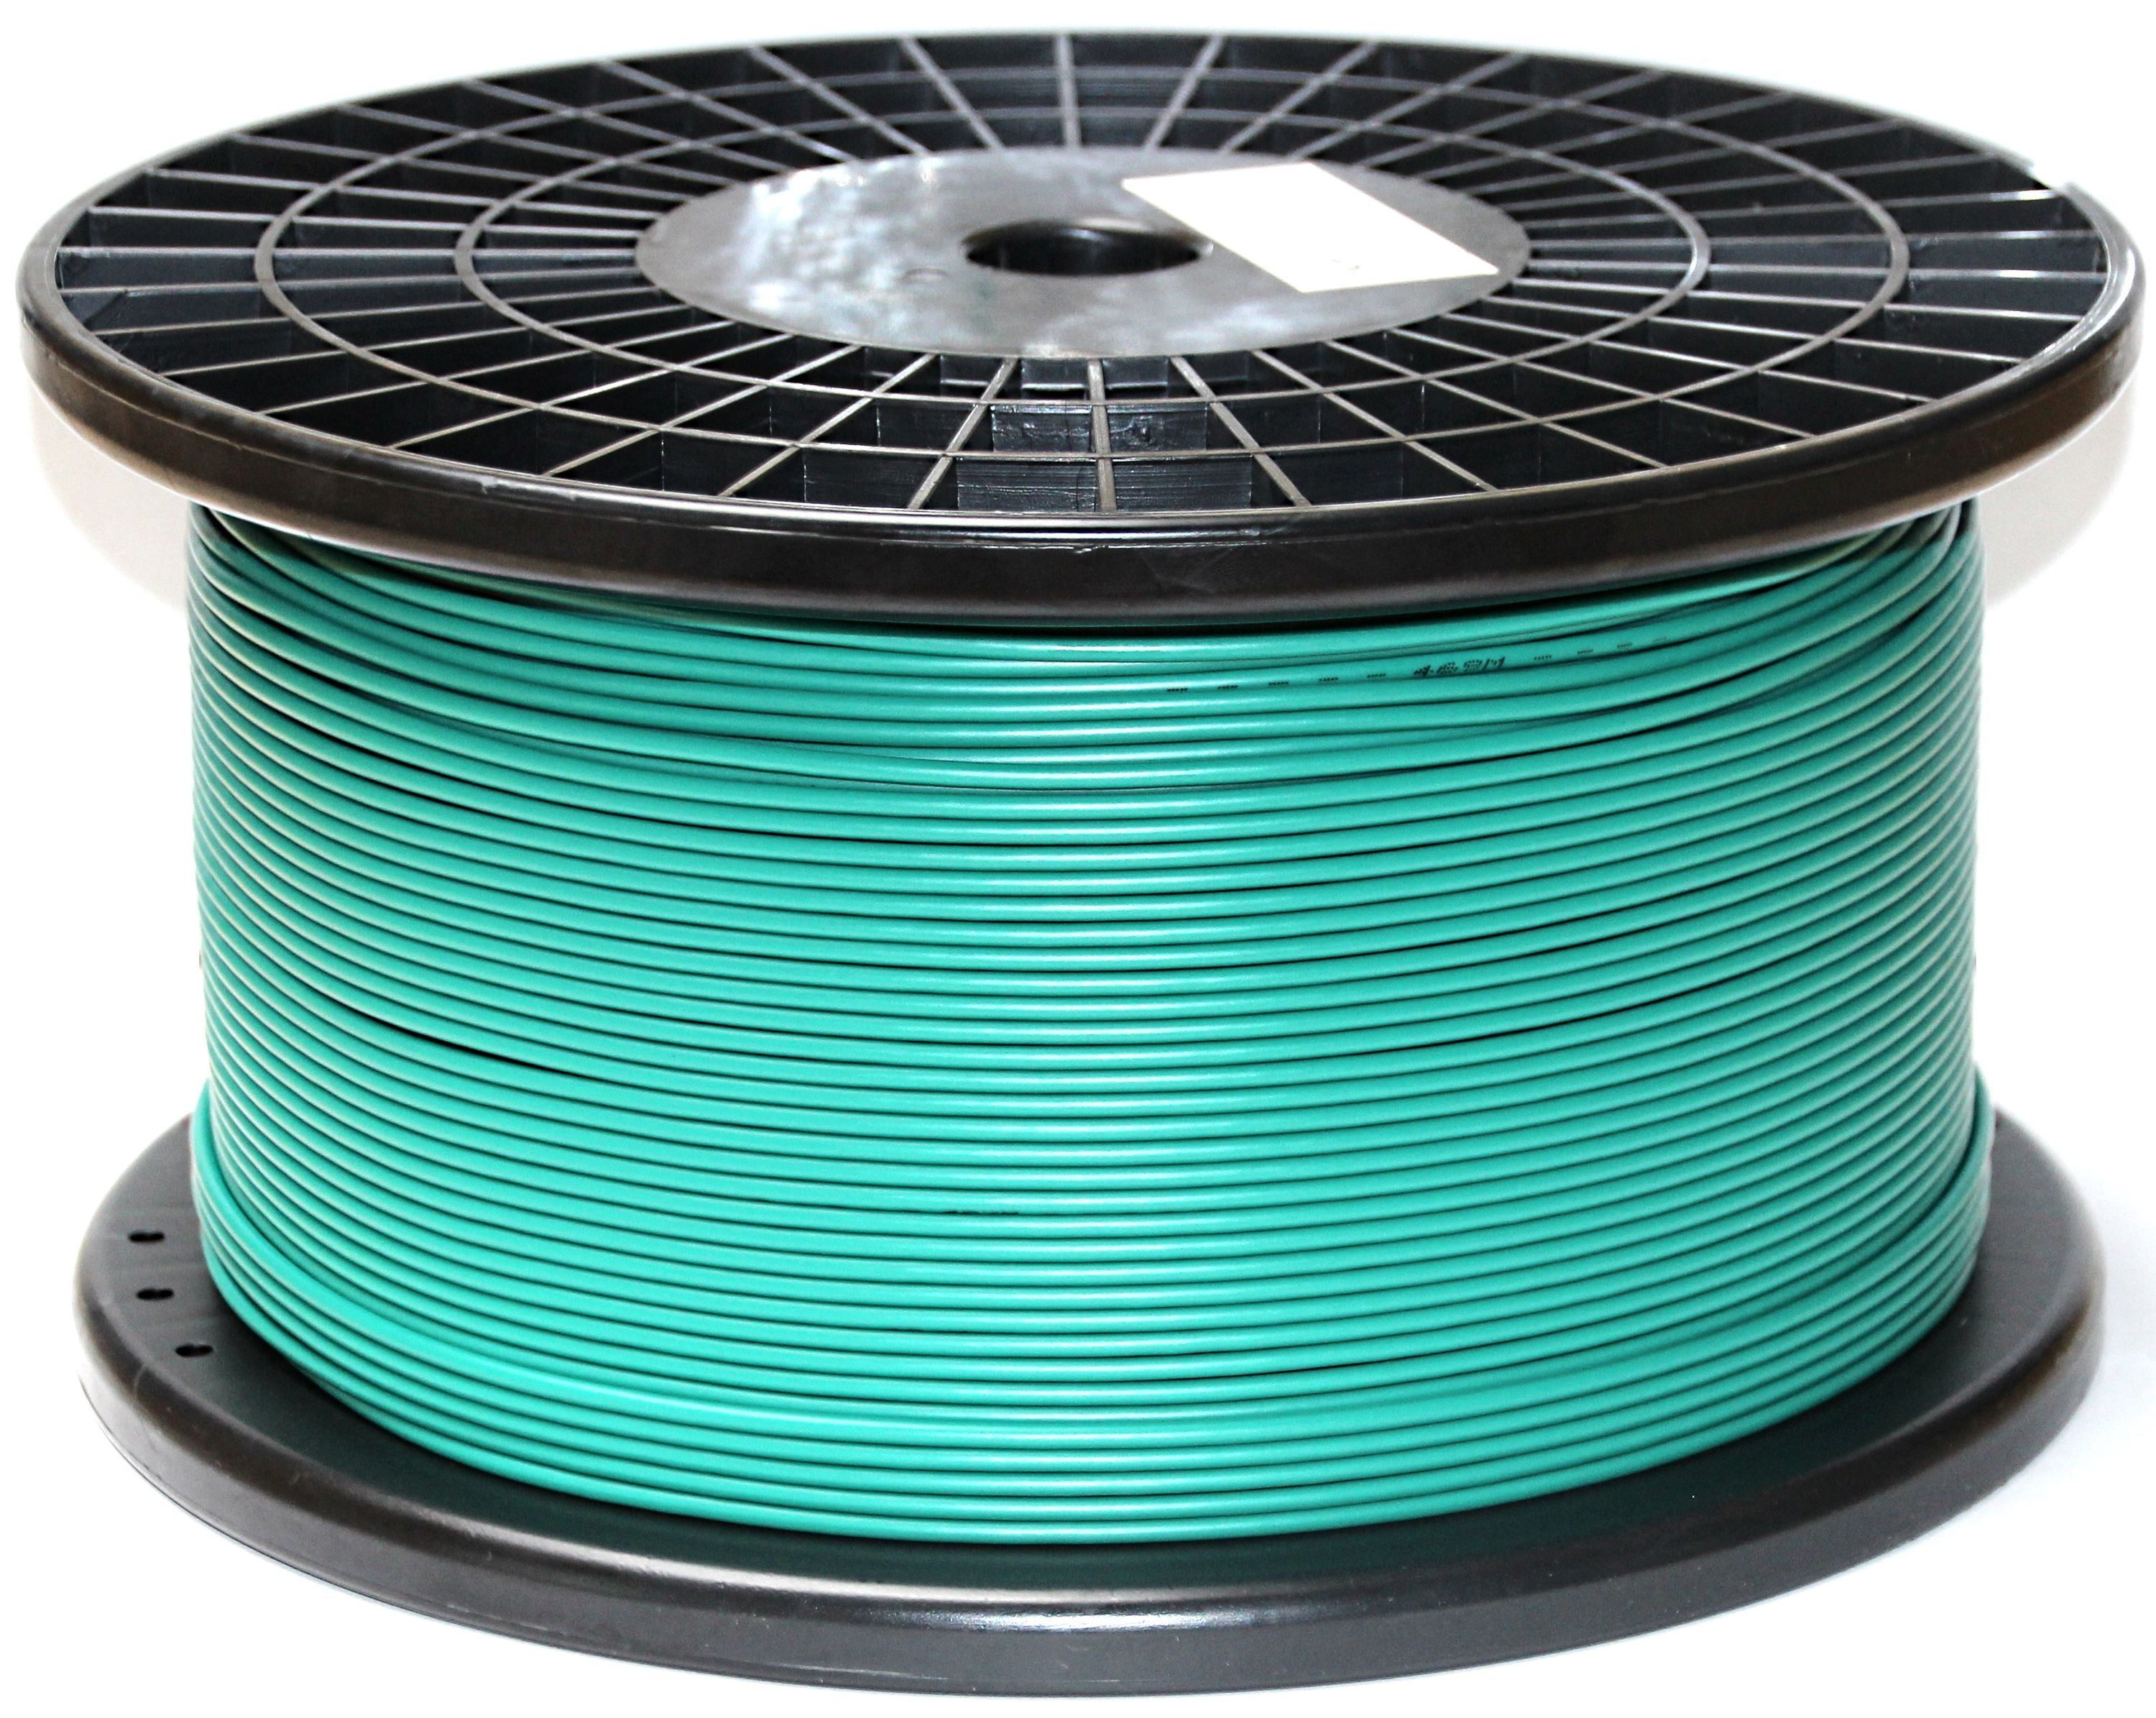 /Ø2,7mm on a spool boundary cable robotic lawn mower wire Zucchetti HQ copper genisys Ambrogio comp Length:5m